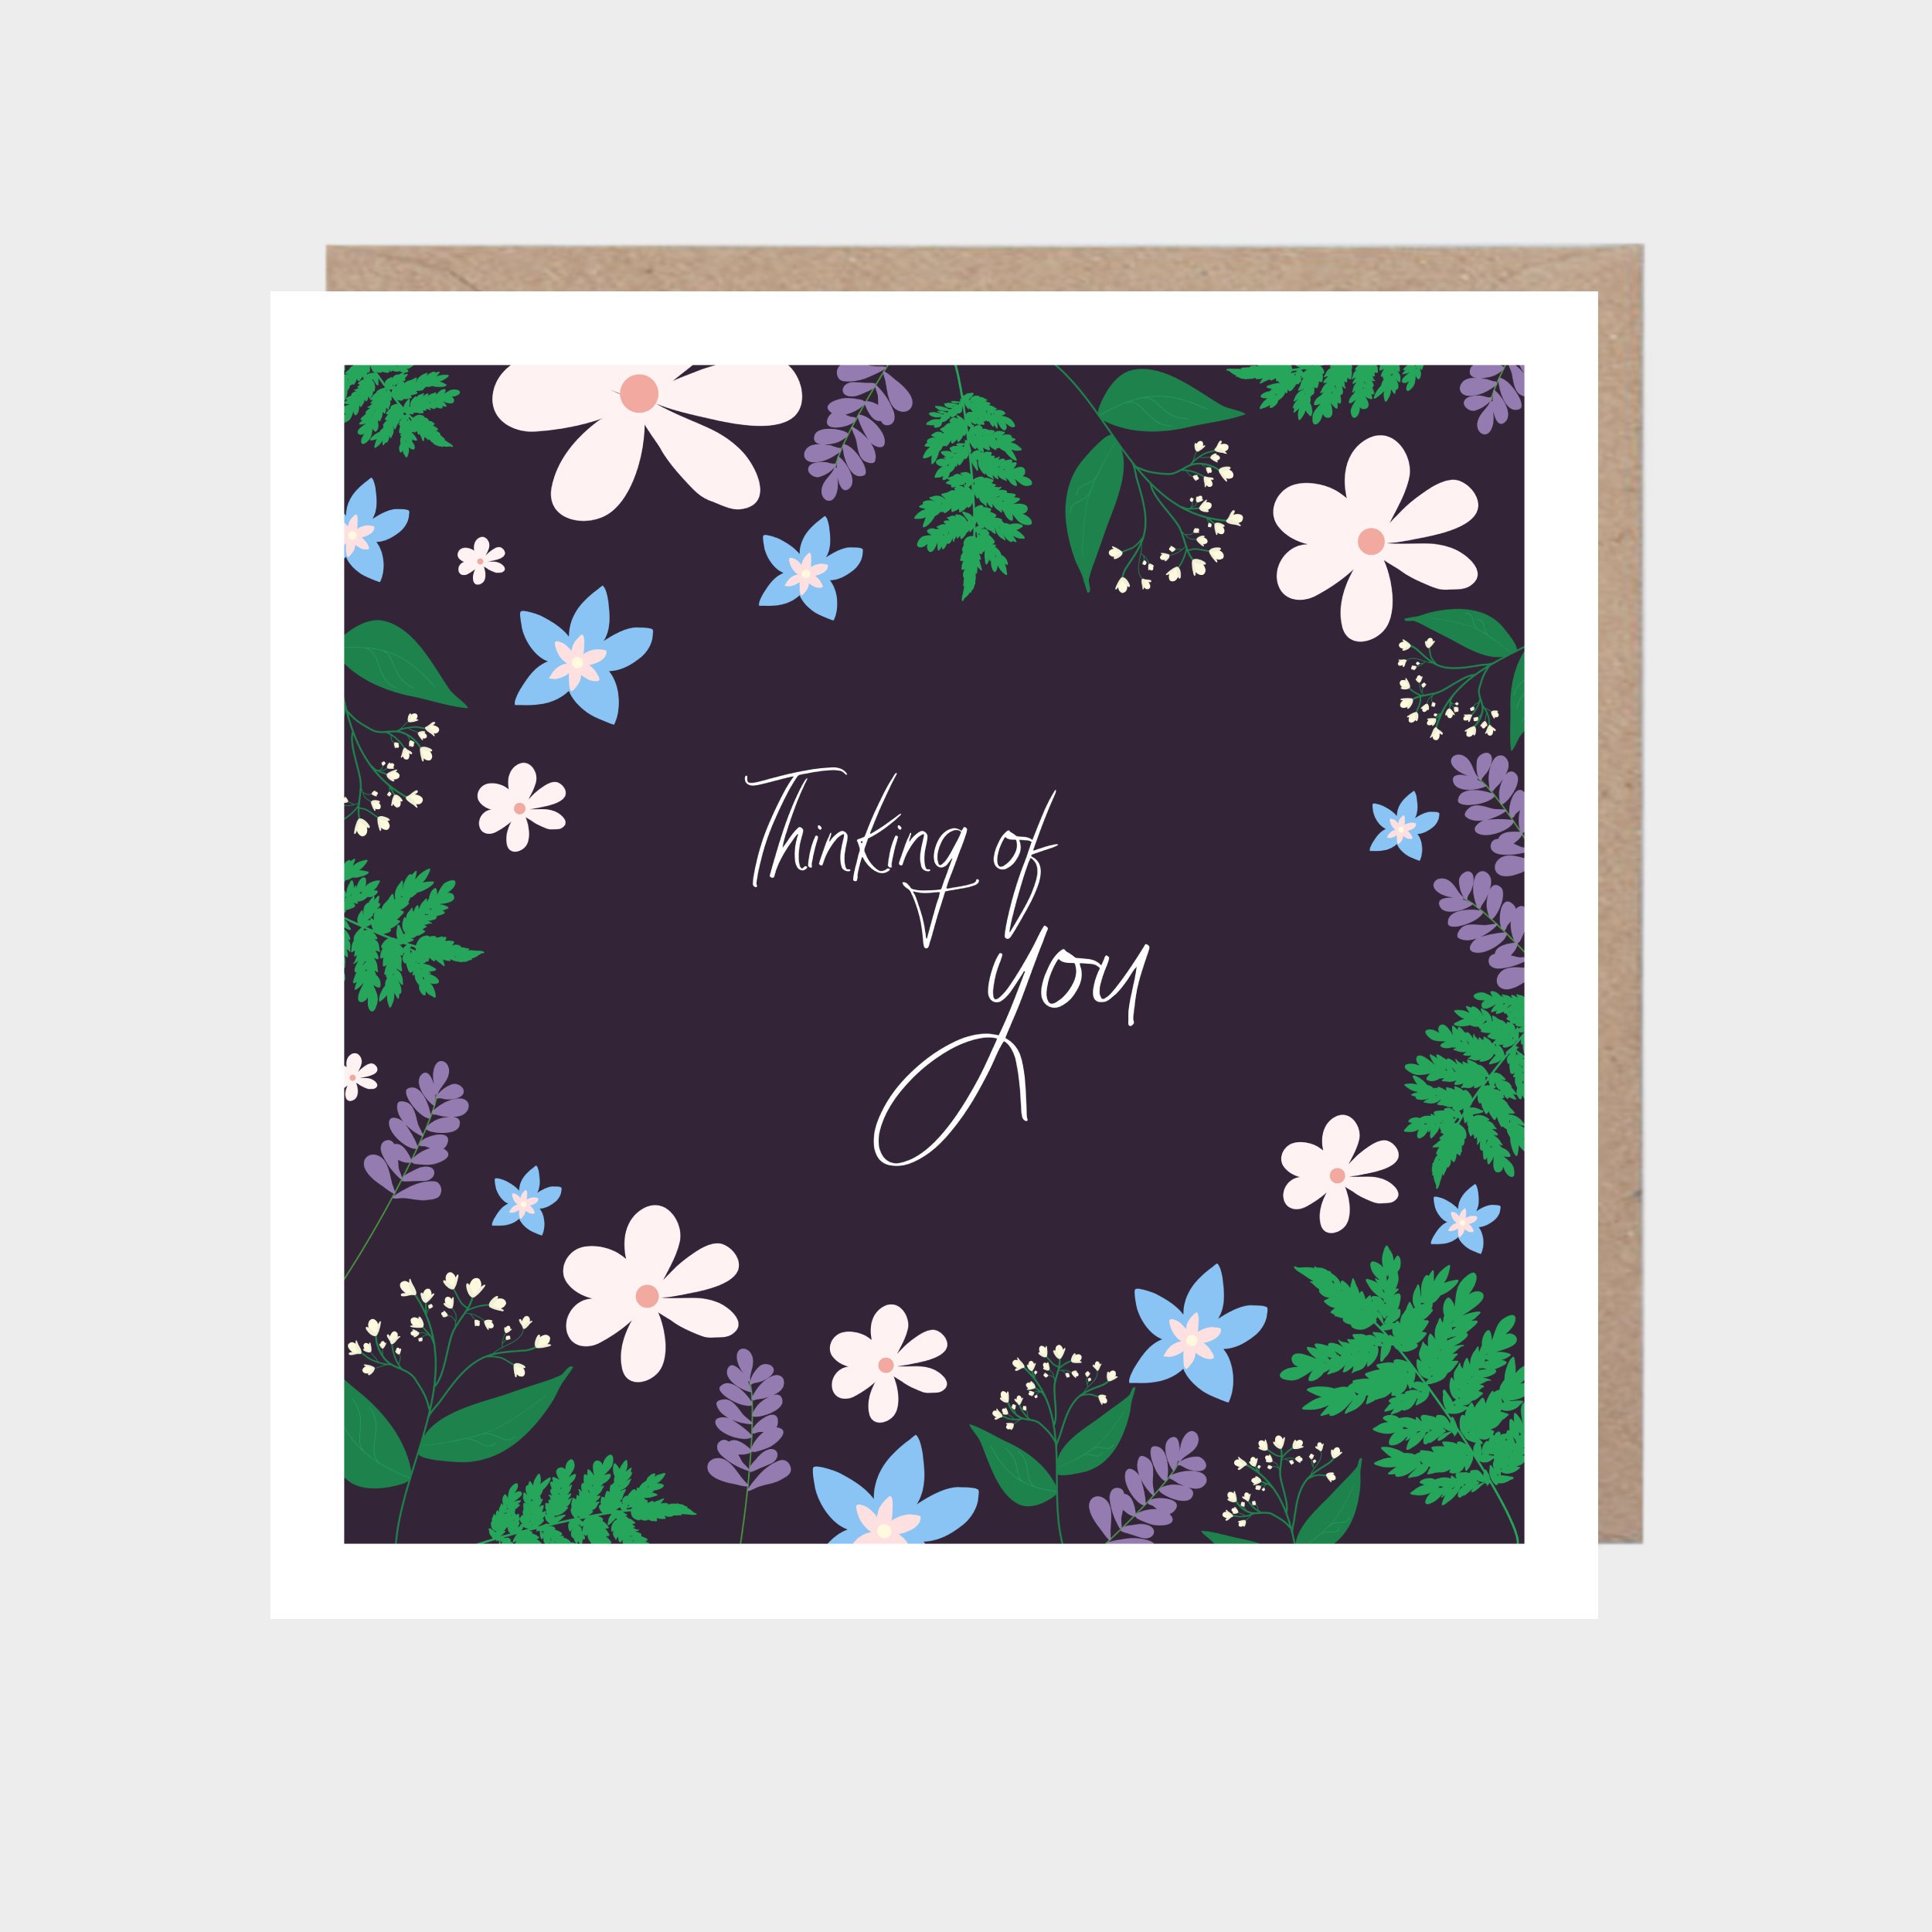 Dark purple square card with an illustrated floral border, with a brown kraft envelope